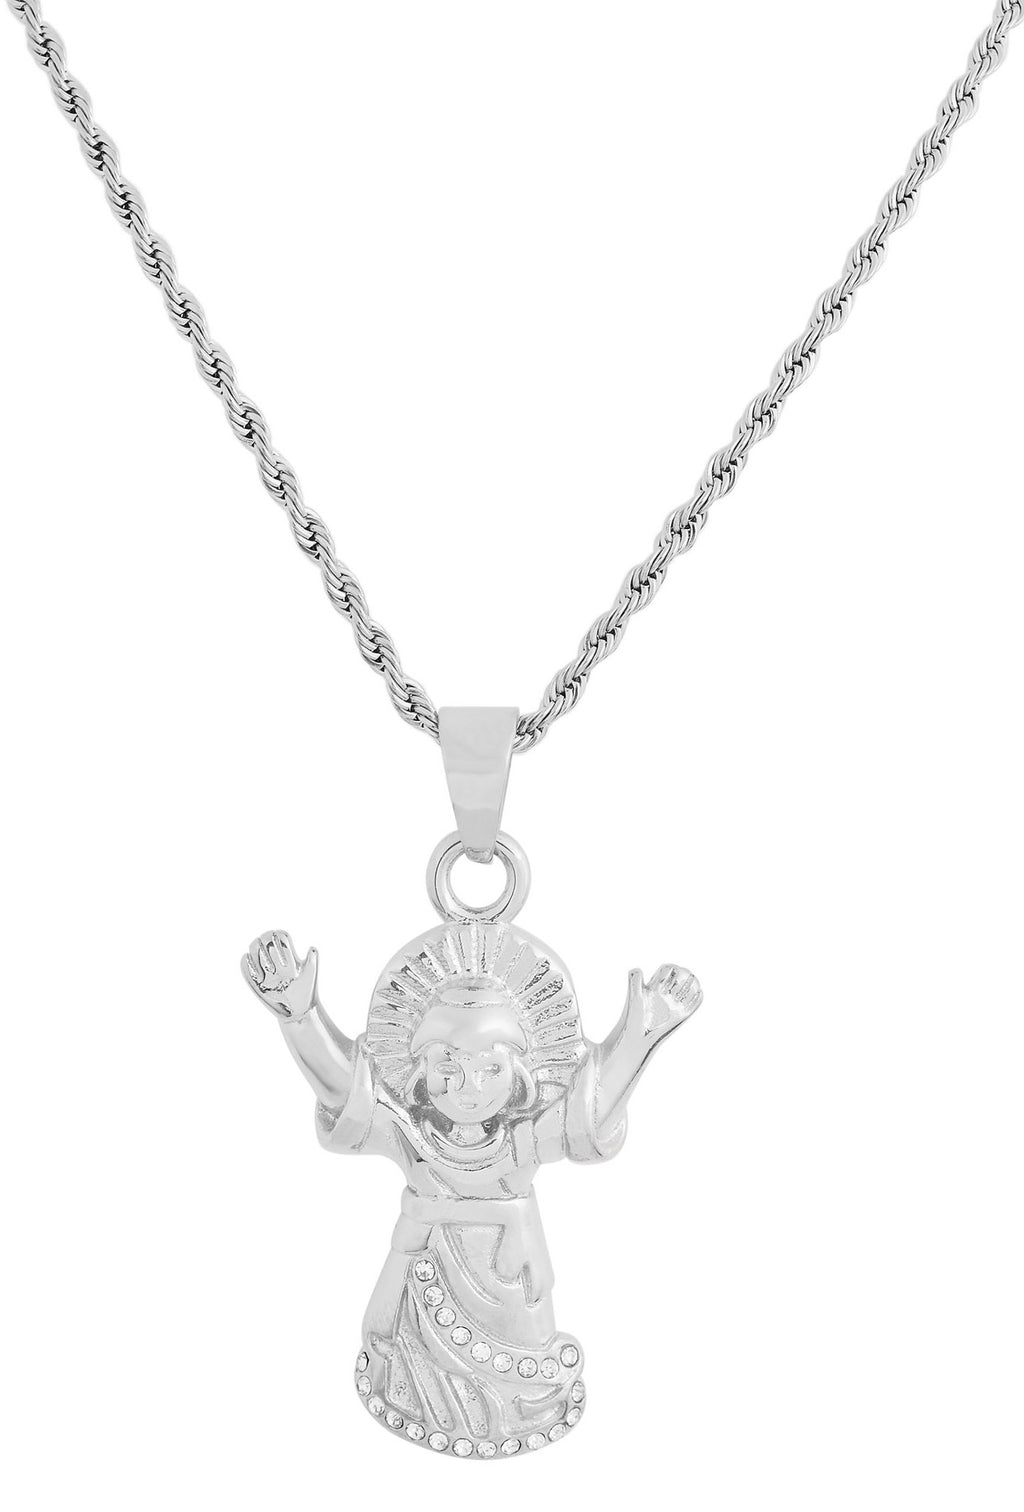 Silver Stainless Steel Praying Angel Pendant Necklace